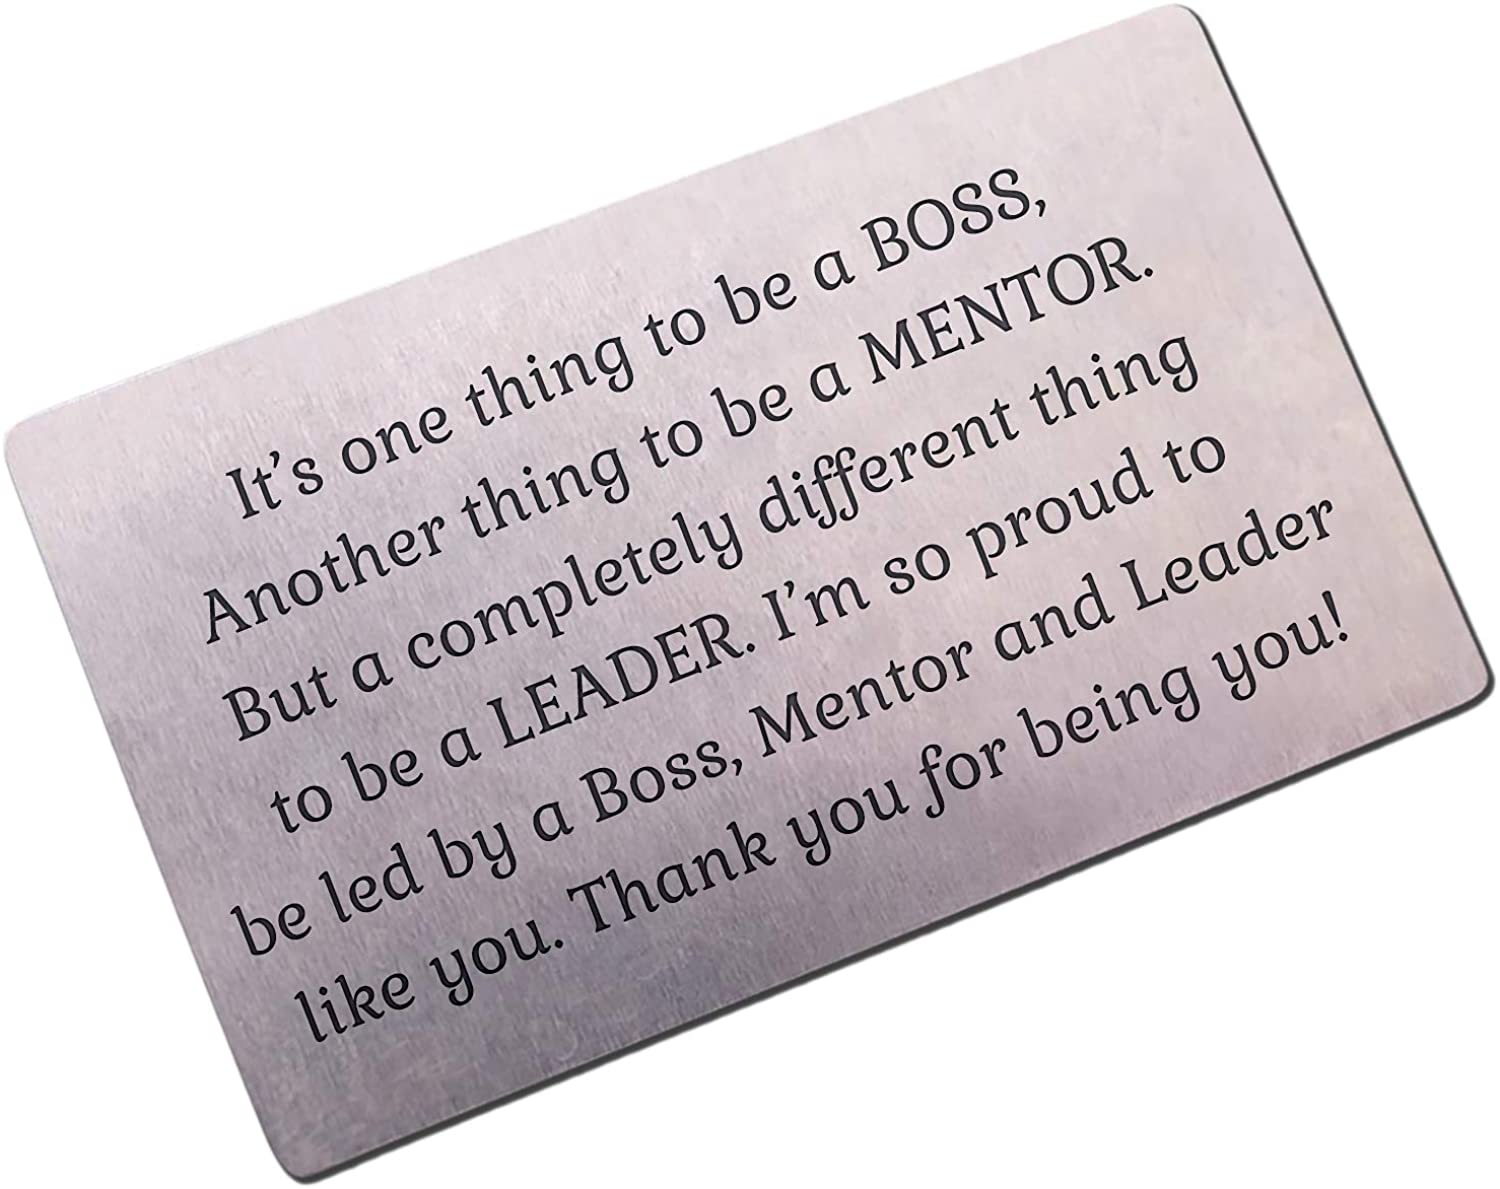 Boss Appreciation Gift Mentor Thank You Gifts For Guidance   Inspiration Coworker Leaving Gifts For Him   Engraved Metal Wallet Card for Supervisor  Thank you Note Going Away Gifts Retirement gift